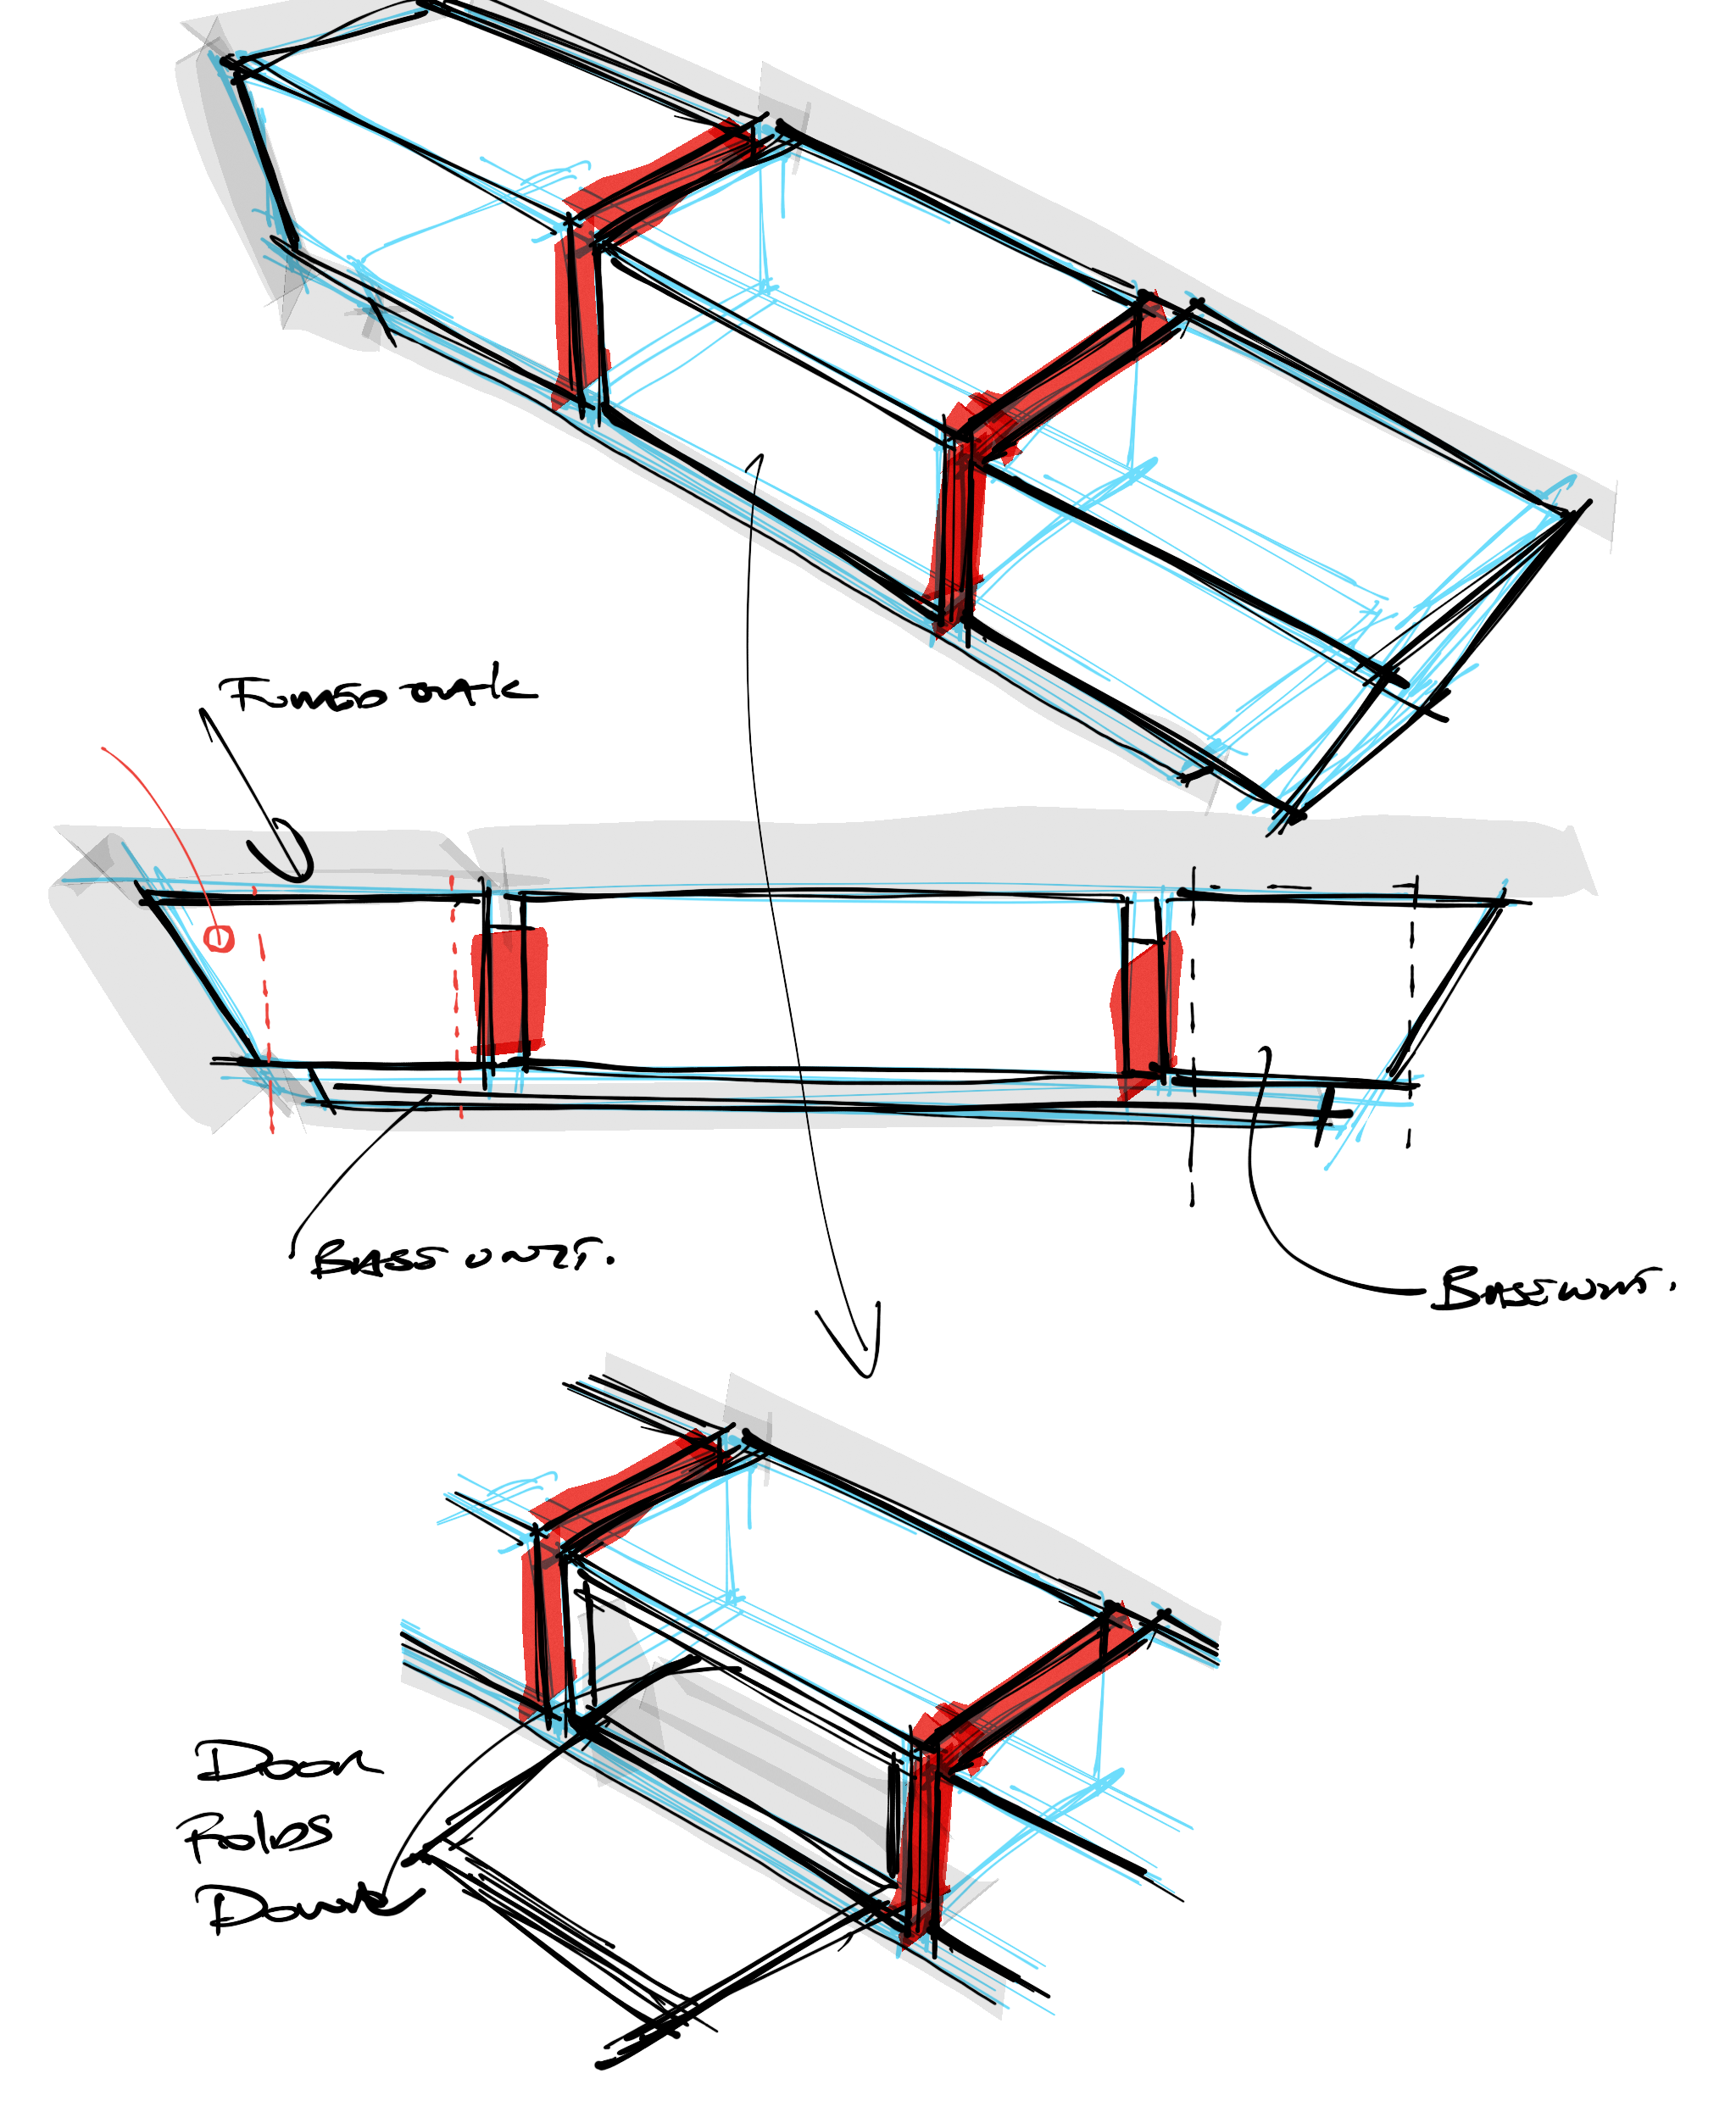 Initial sketches of the Basso AV Unit